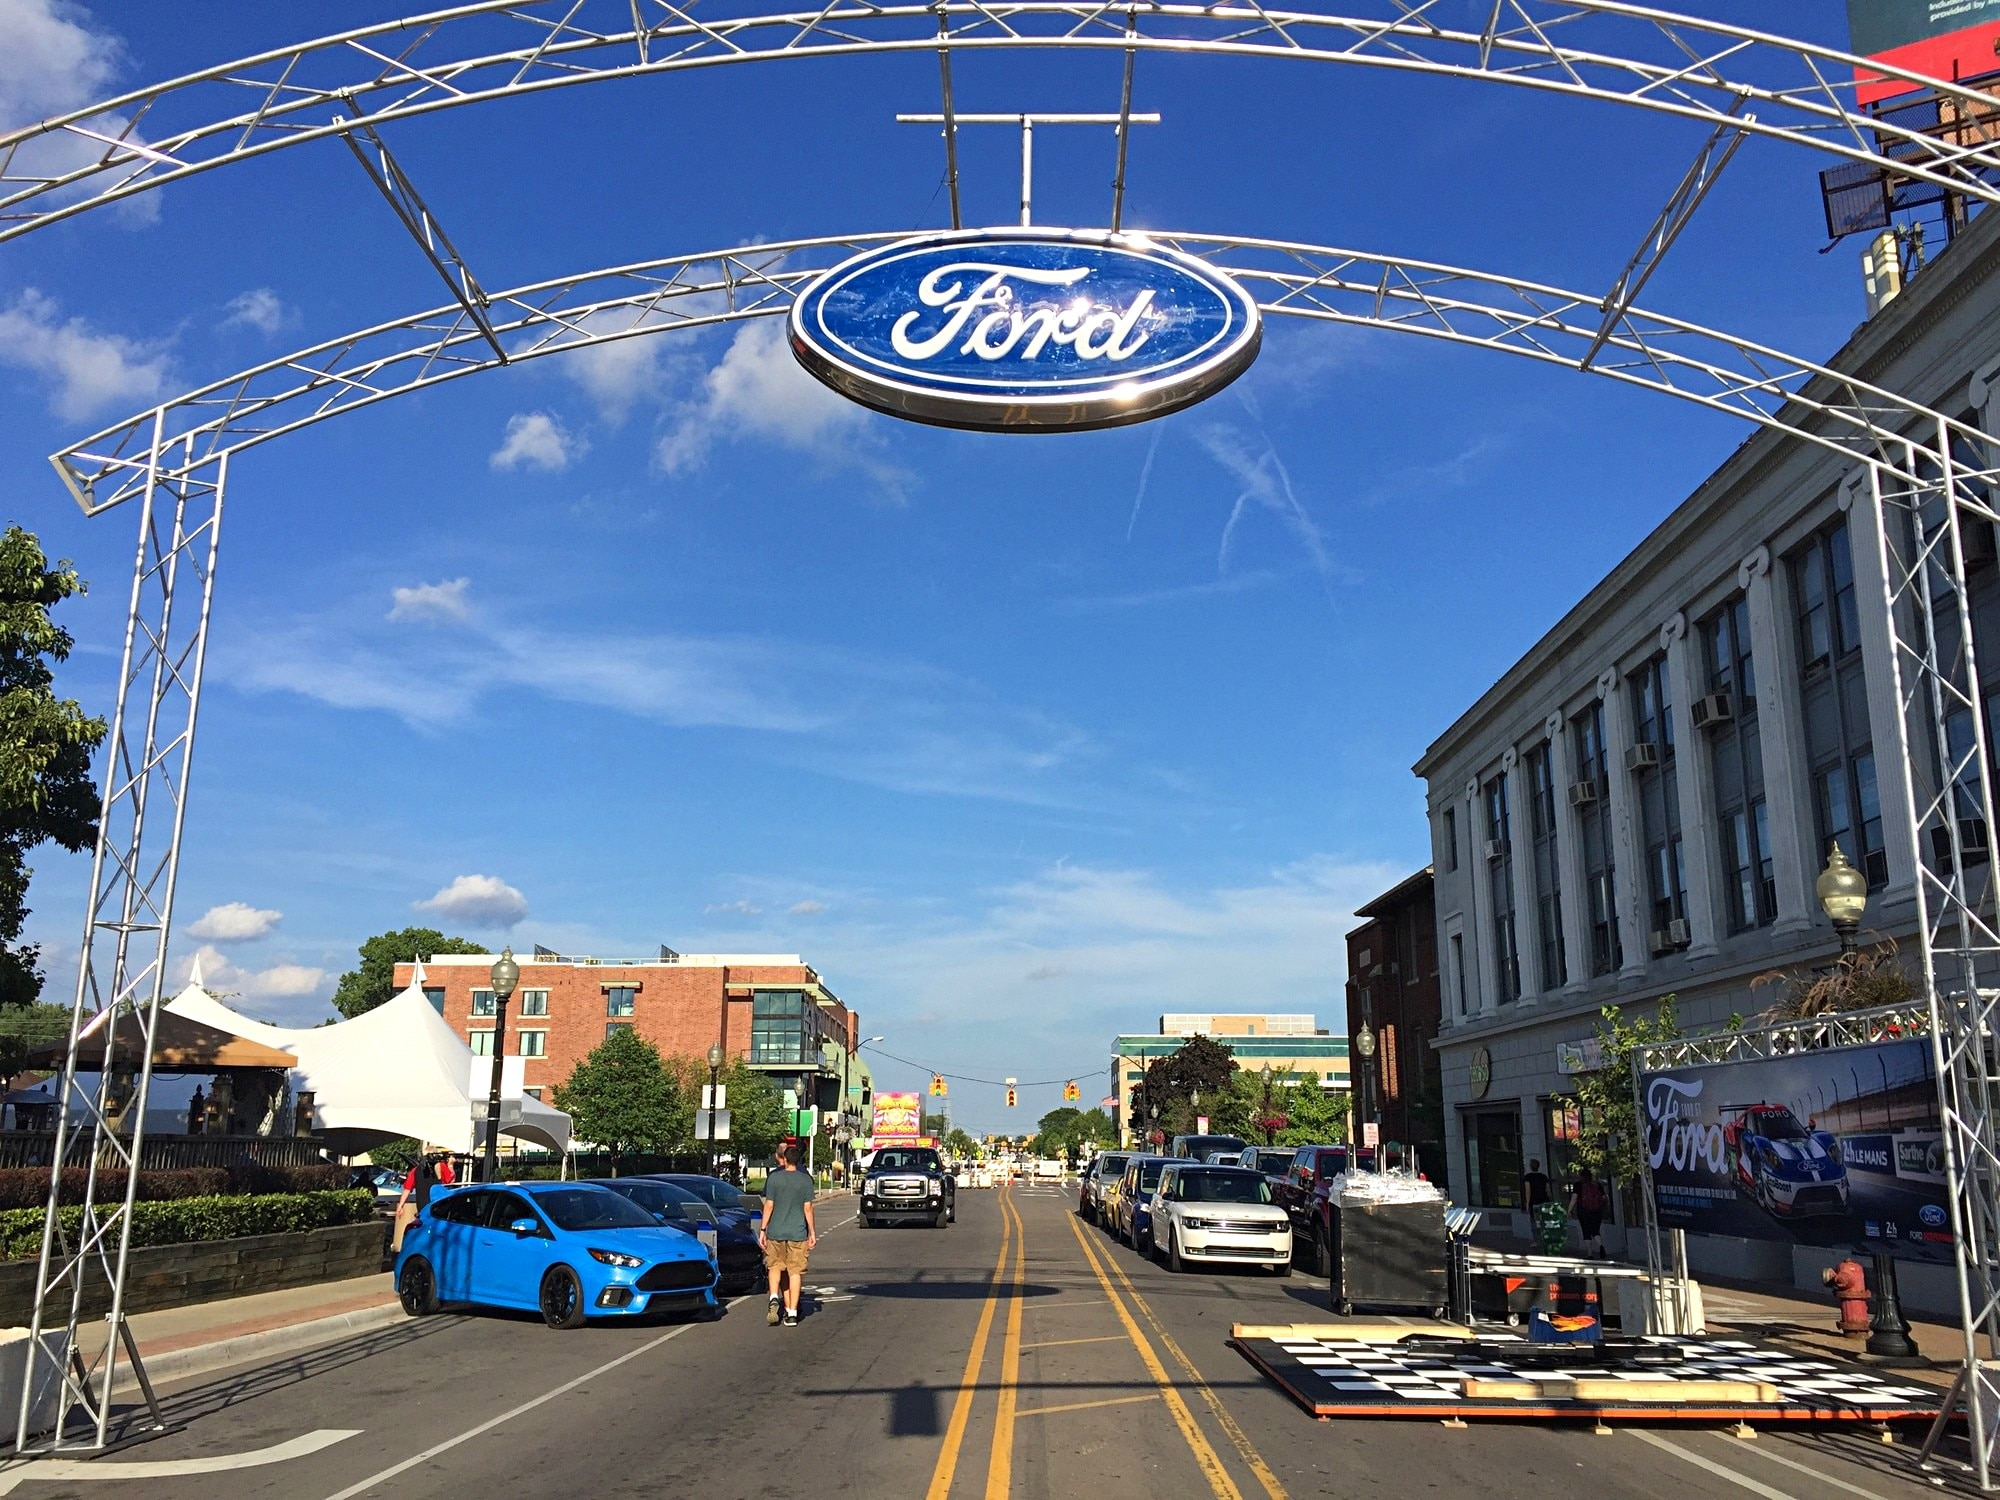 2016 Woodward Dream Cruise Mustang Alley 002